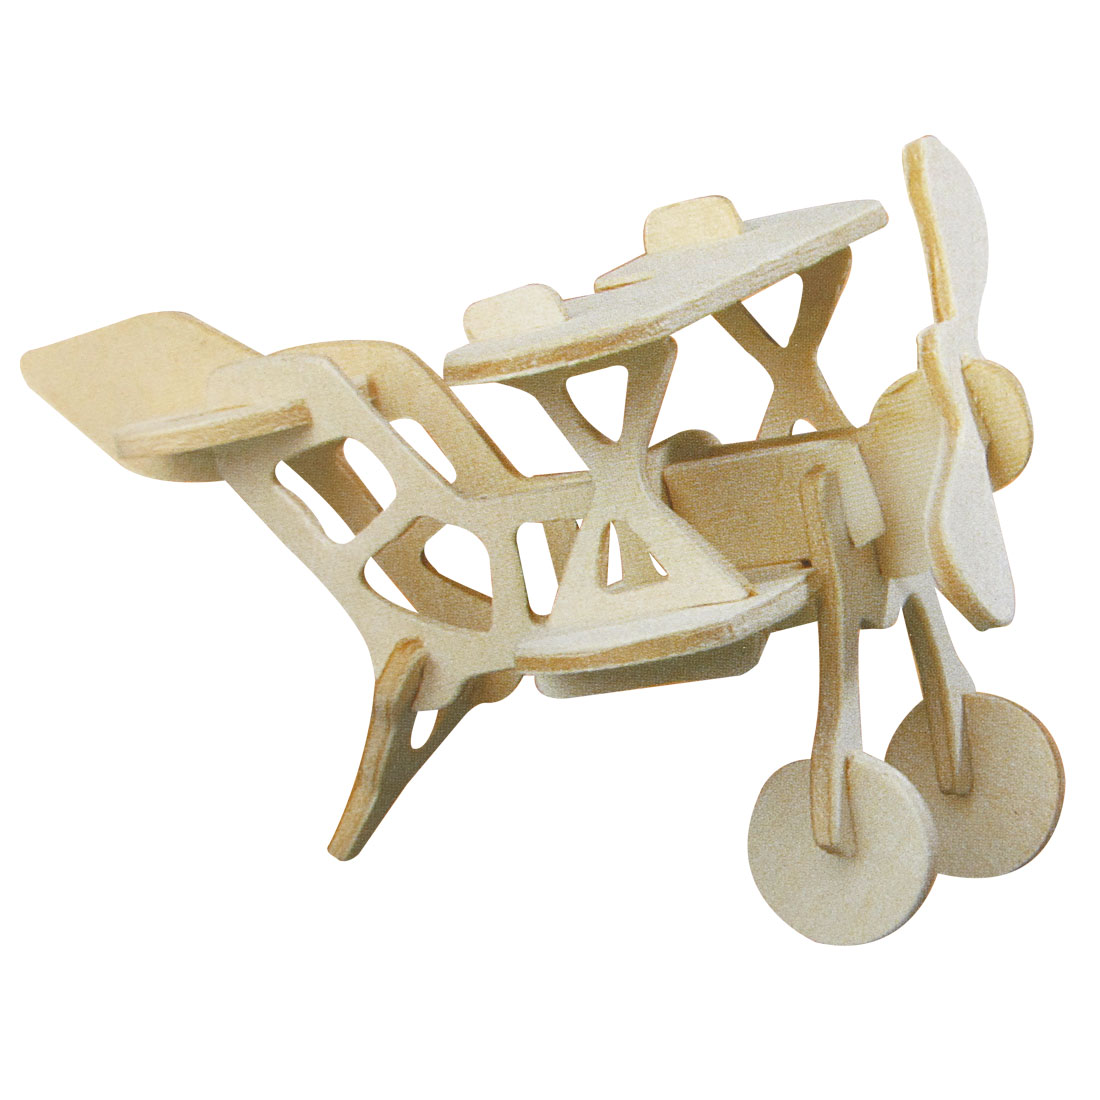 BI-plane Model Intelligence Assemble 3D Wooden Puzzle Toy for Children